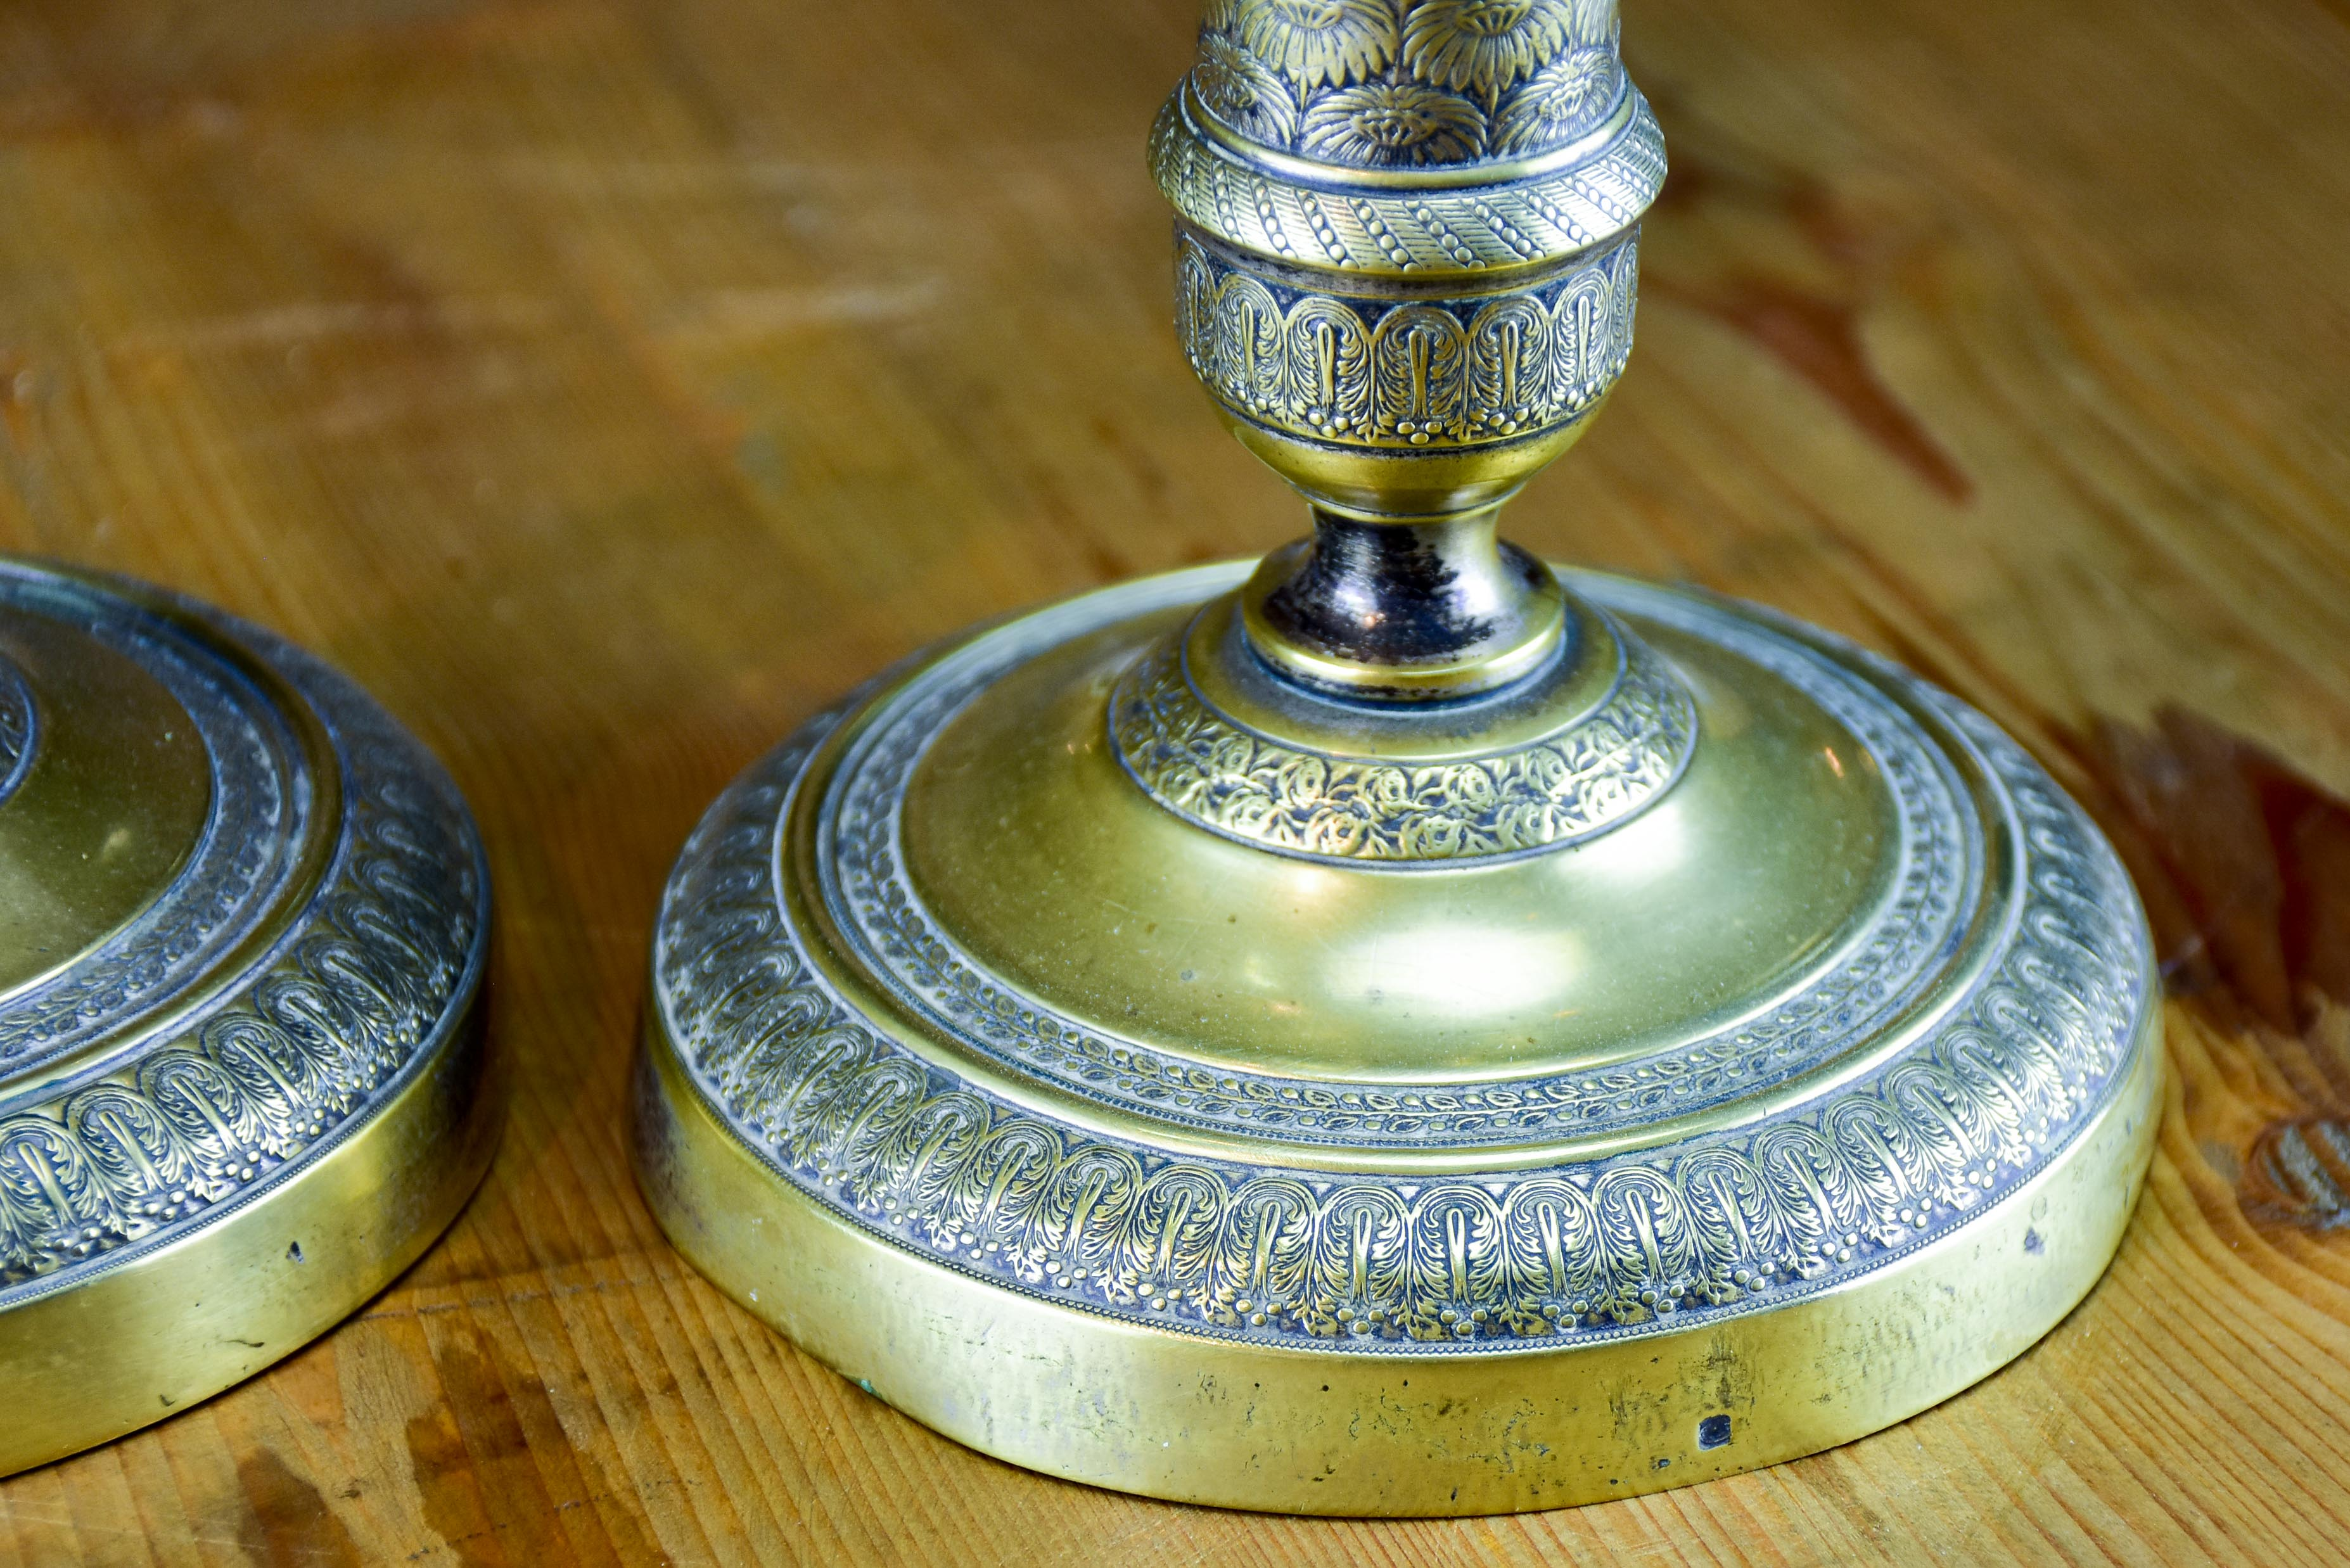 Pair of classic antique French candlesticks